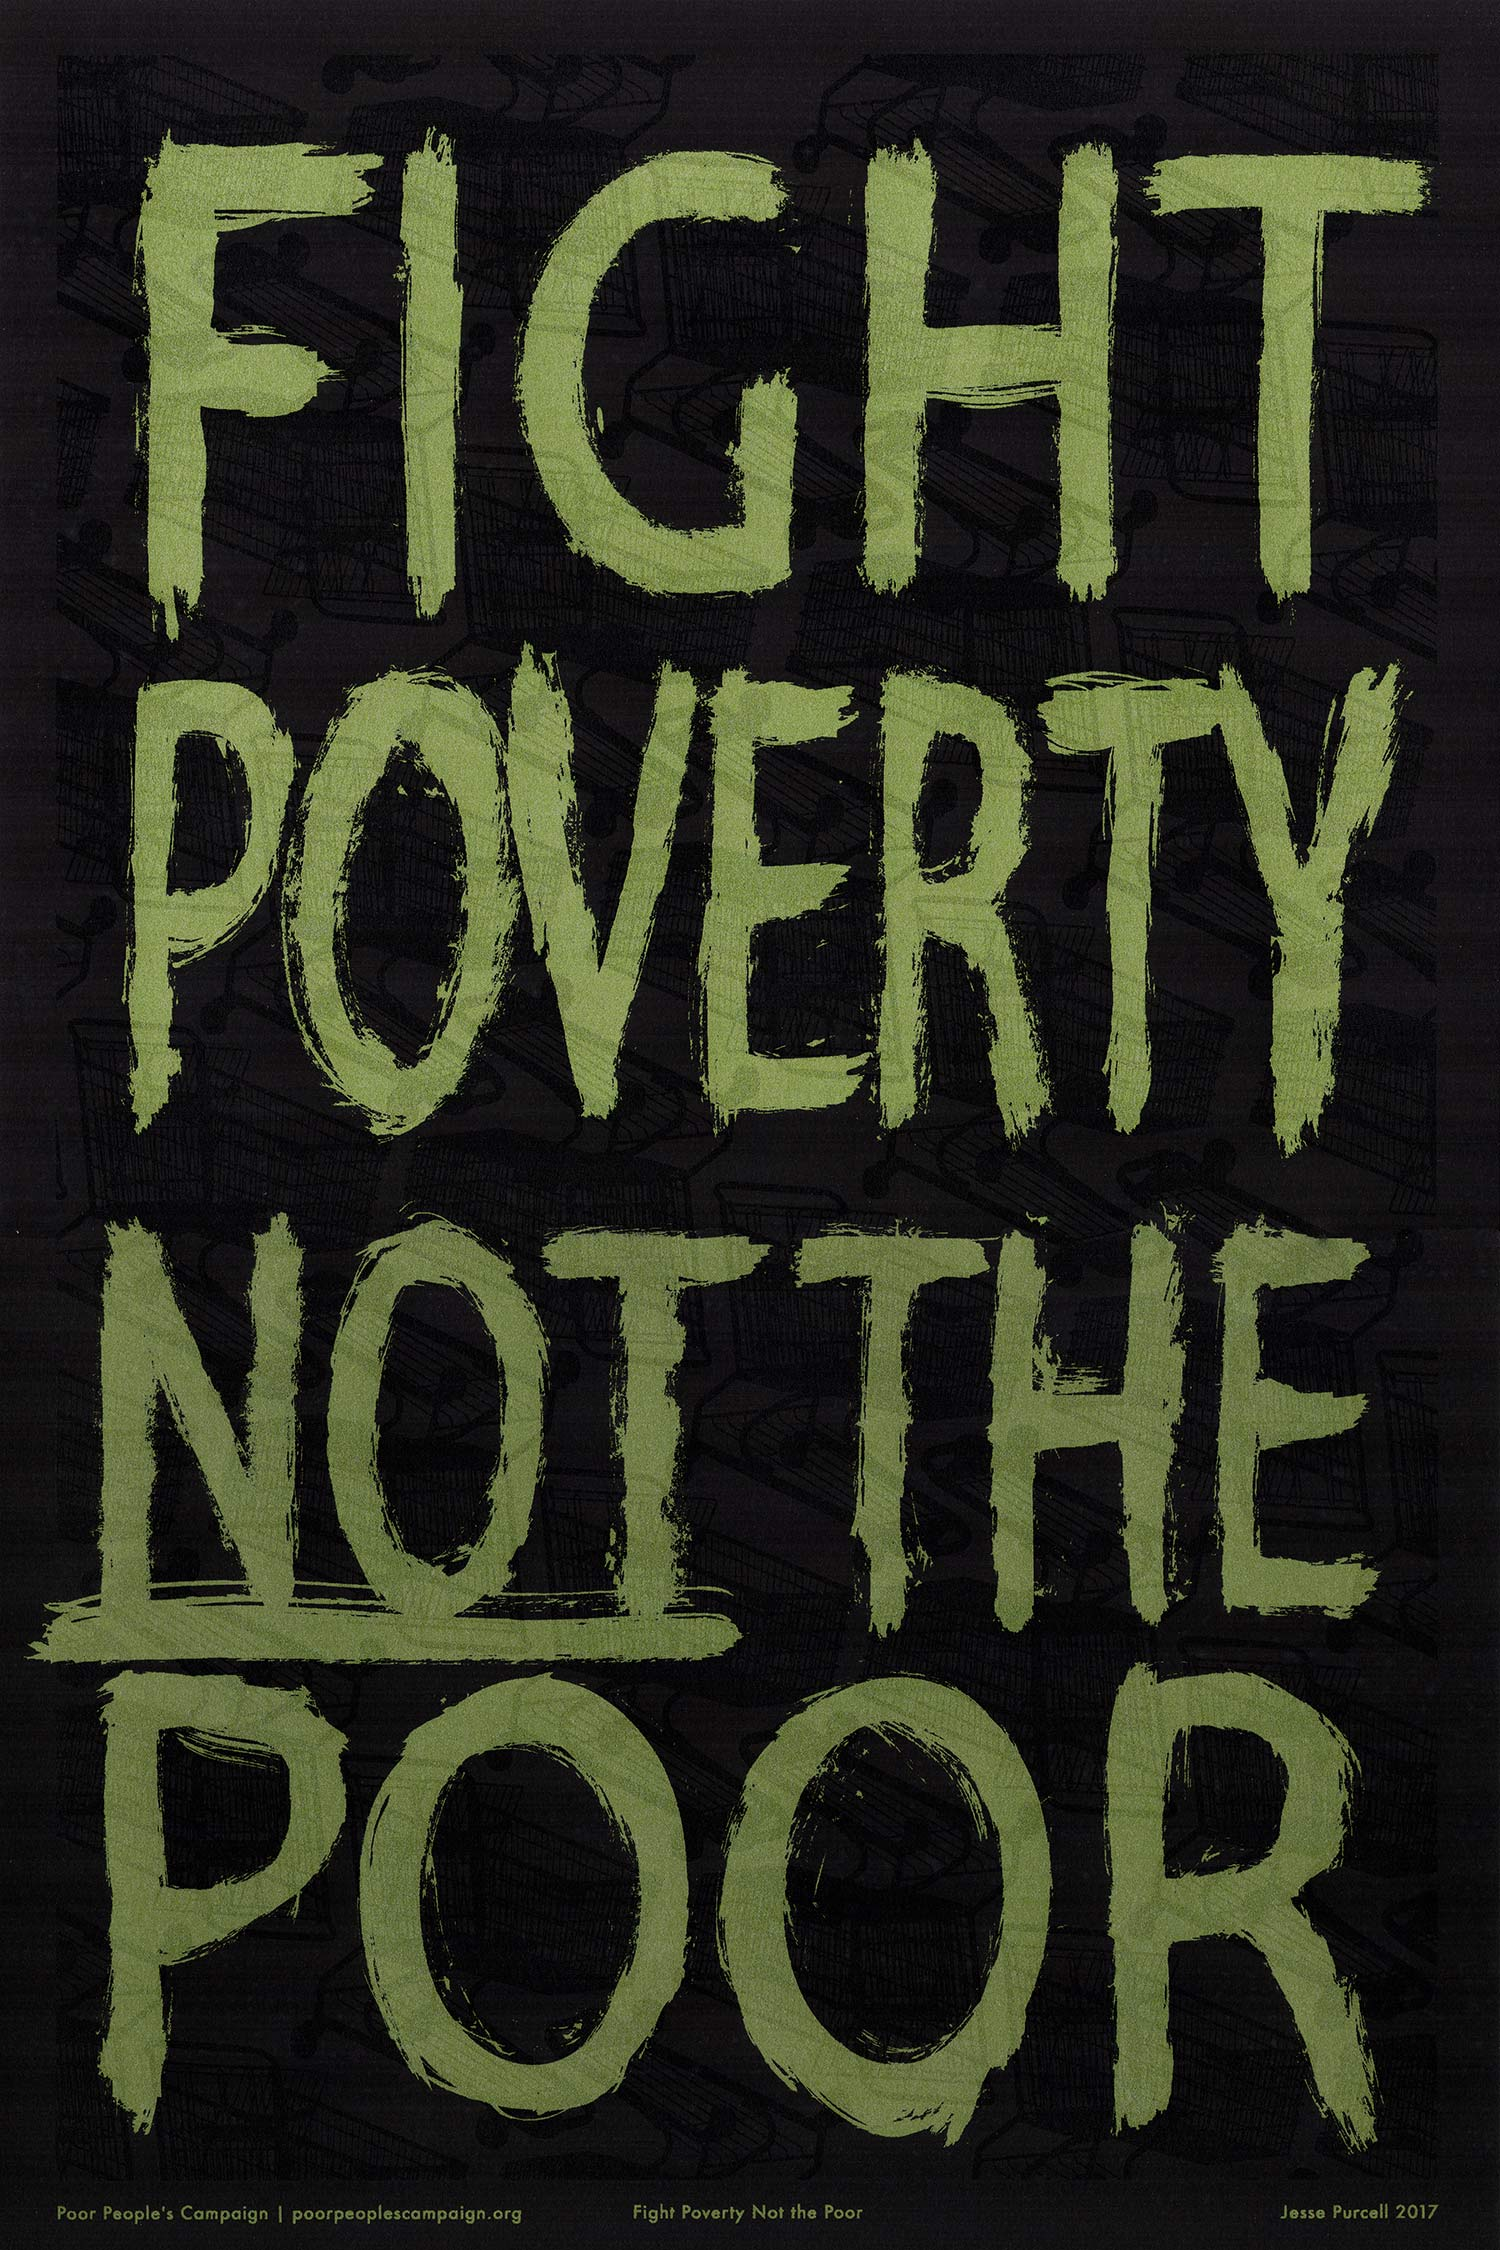 Fight Poverty Not the Poor graphic